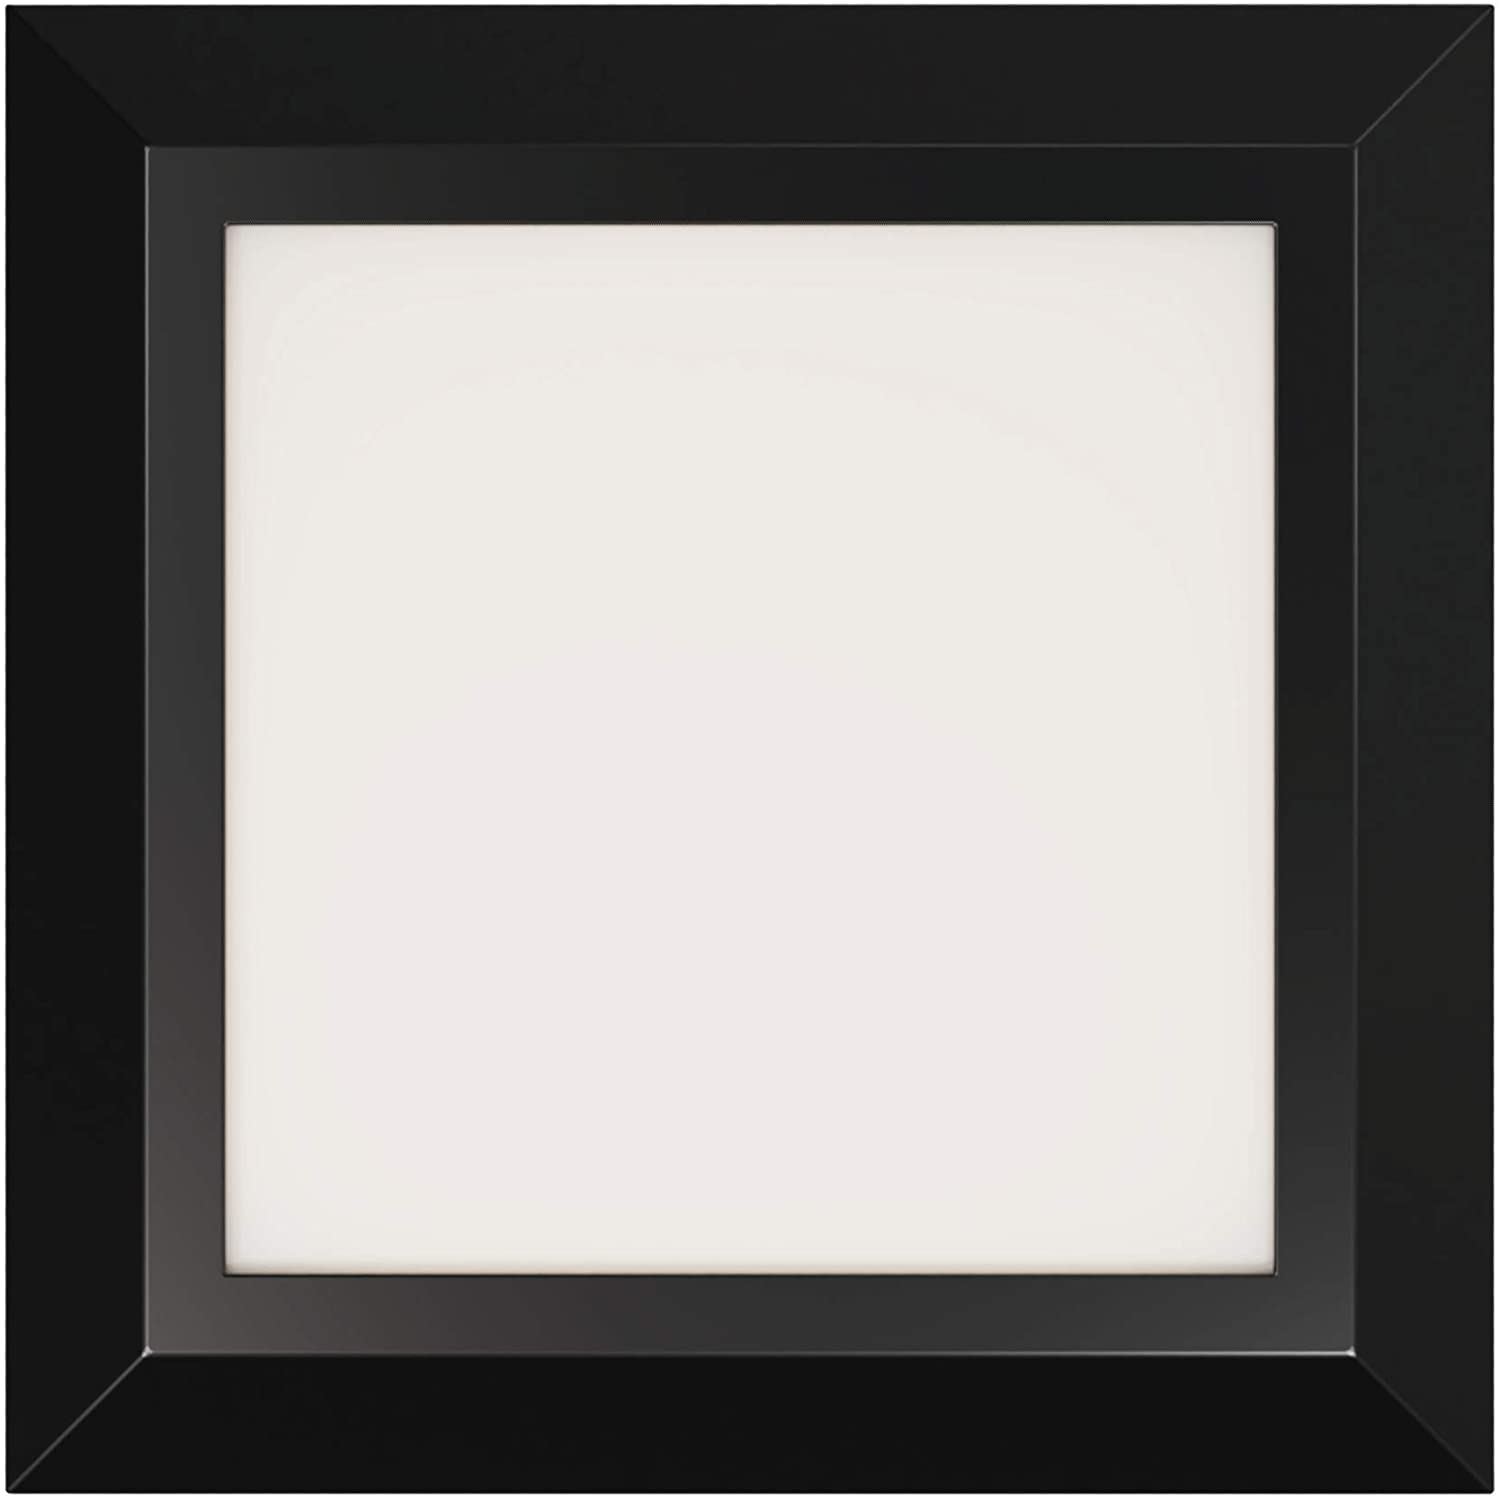 NextGlow Surface Mount 7-inch LED Ceiling Light - Square 16W/ Ultra-Thin 1100lm Dimmable, Lighting for Home, Luxurious Flush Mount ETL, Energy Star, Easy Installation on J-Box (Black Finish / 4000K)